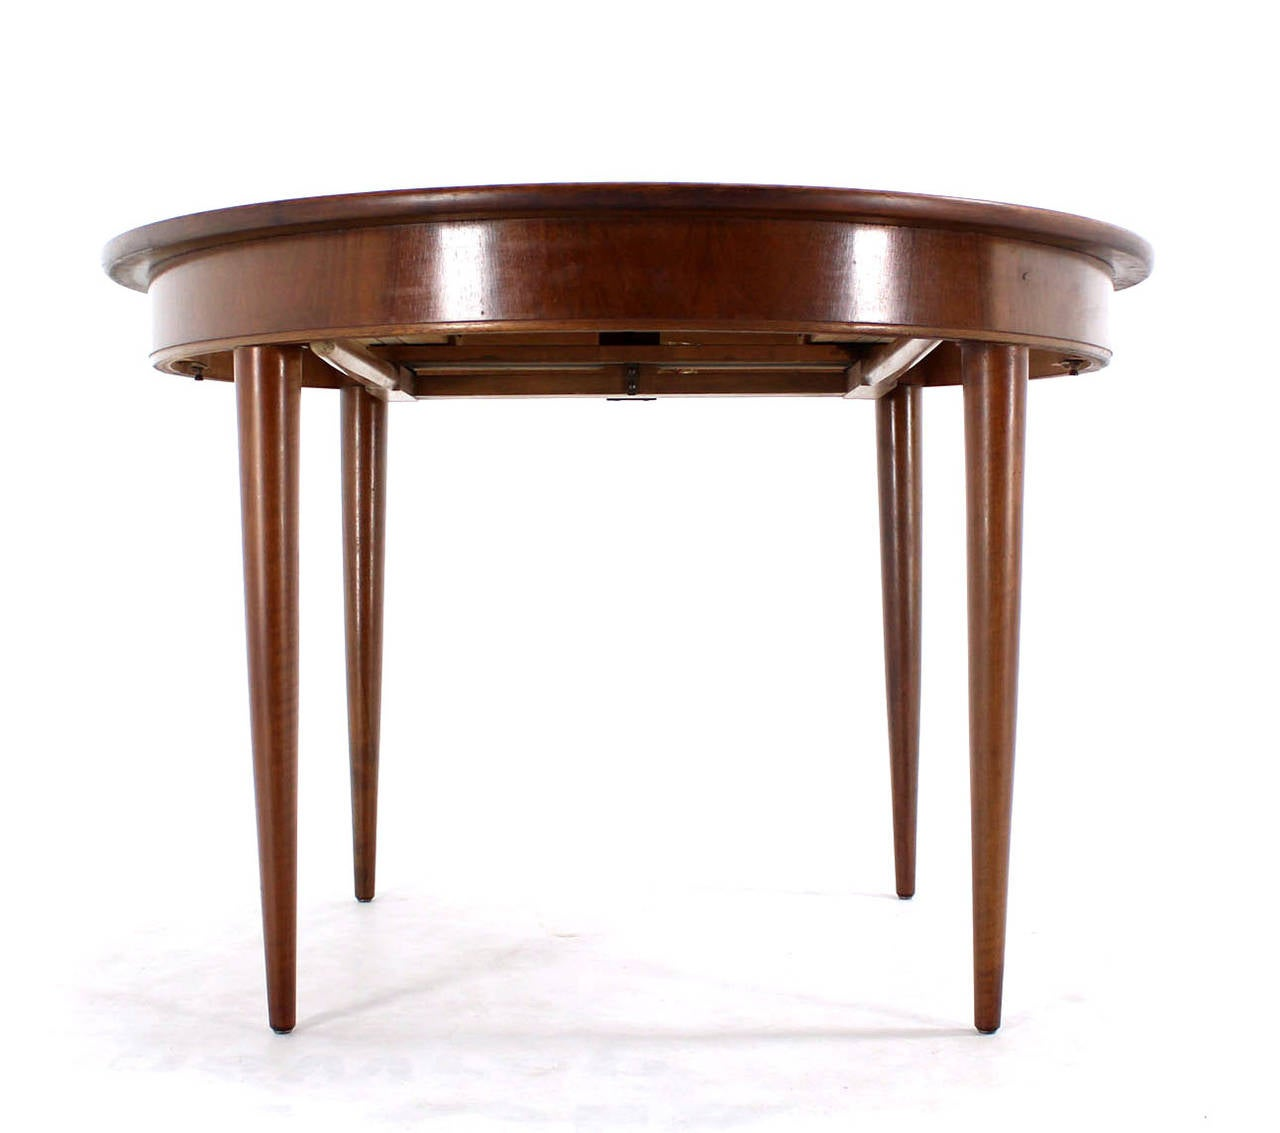 Mid Century Modern Round Walnut Dining Table With Three Leaves Image 6